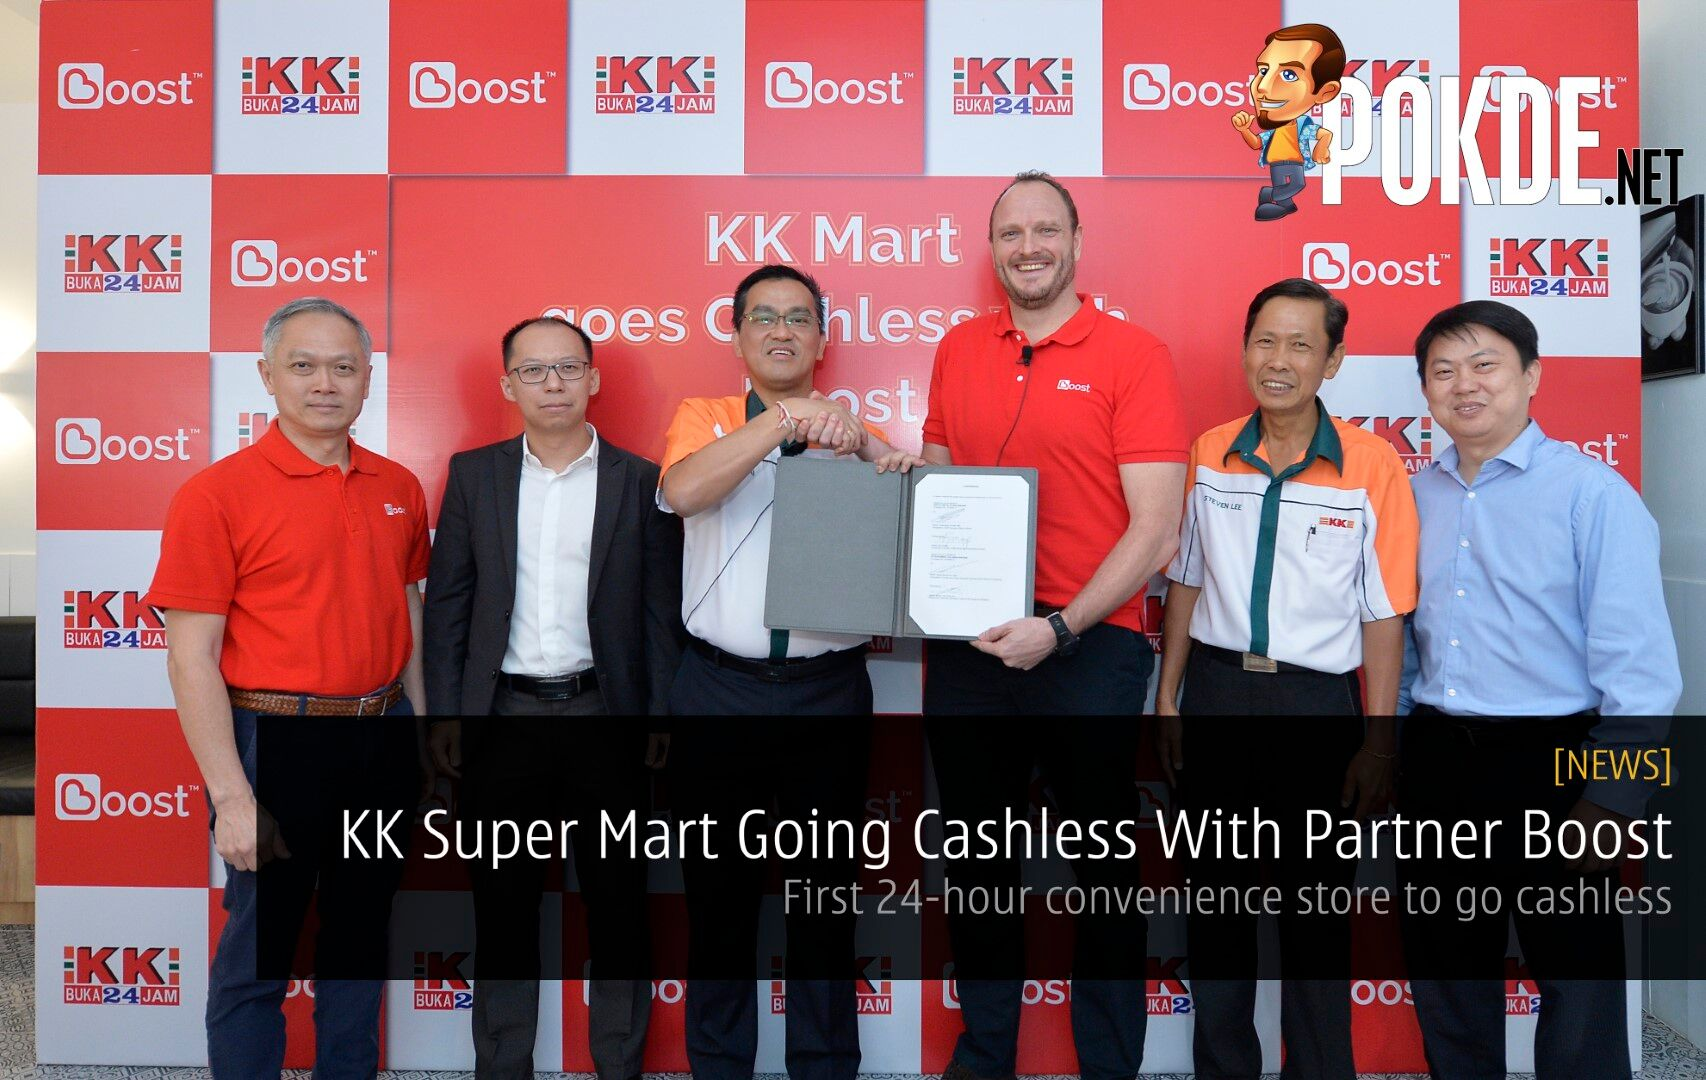 KK Super Mart Going Cashless With Partner Boost- First 24-hour convenience store to go cashless 28